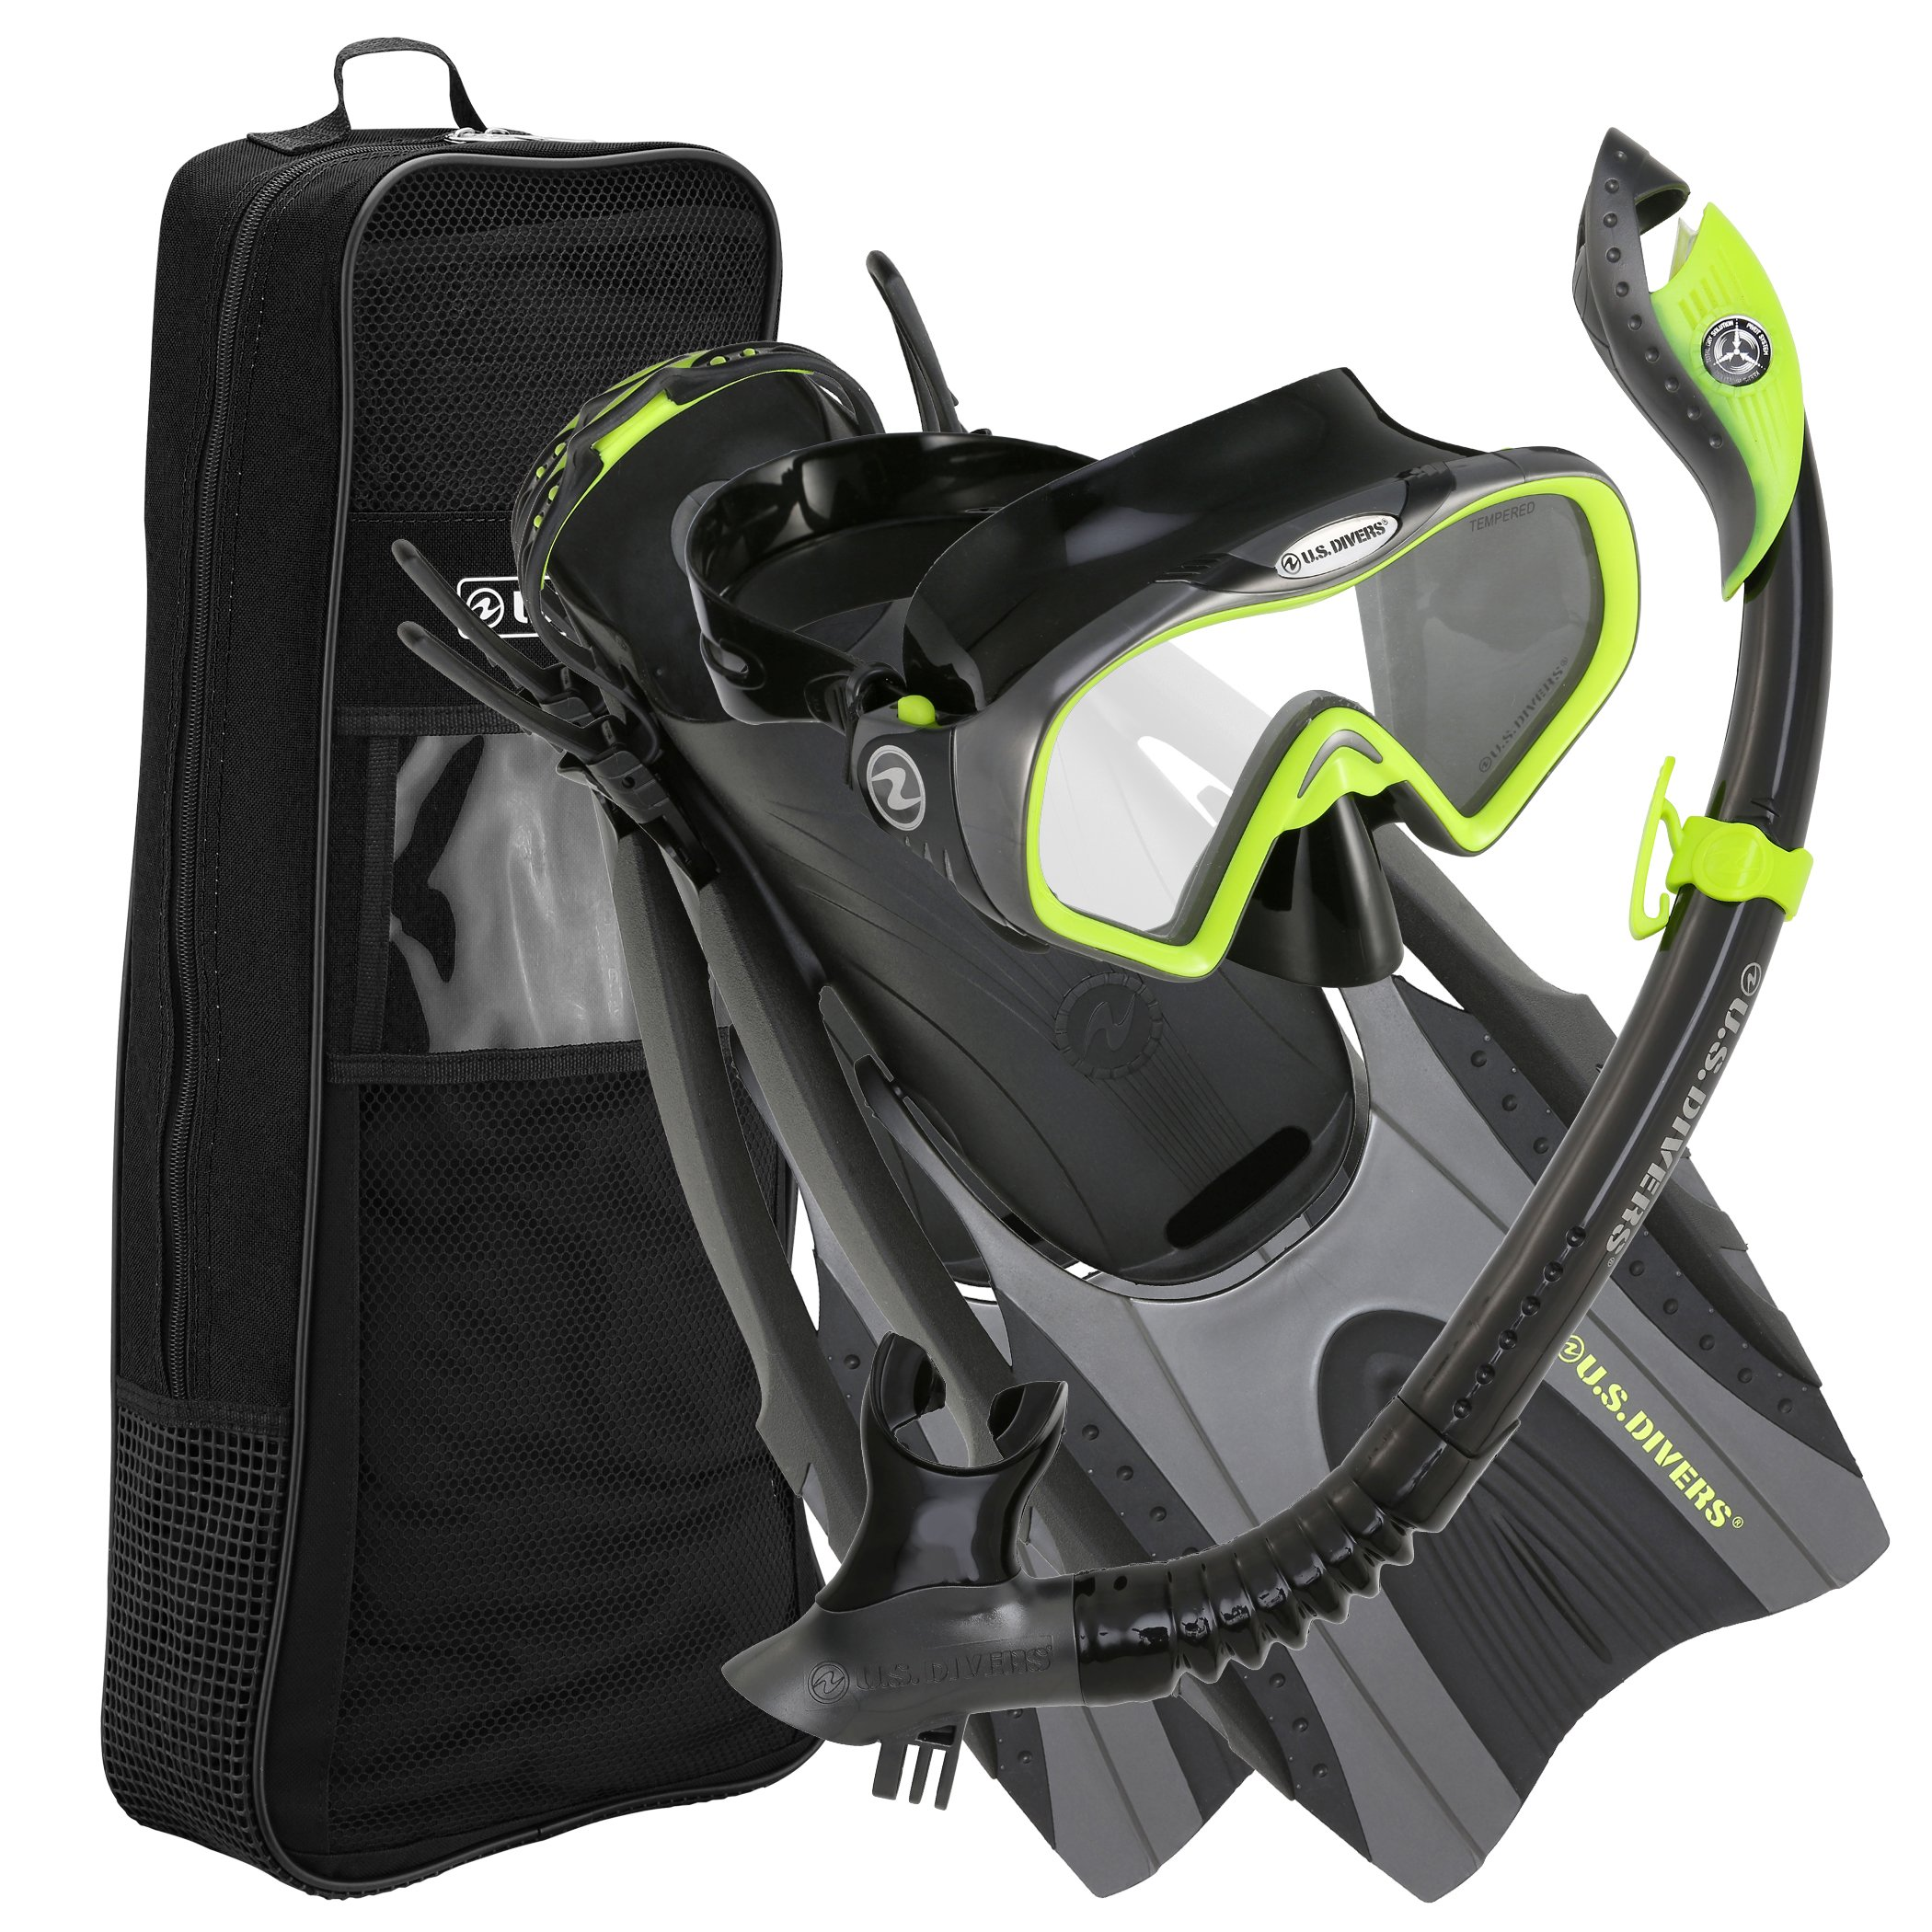 U.S. Divers Pro LX+ Snorkeling Set with Starbuck Iii LX Purge Mask, Neon Black, Large/X-Large by U.S. Divers